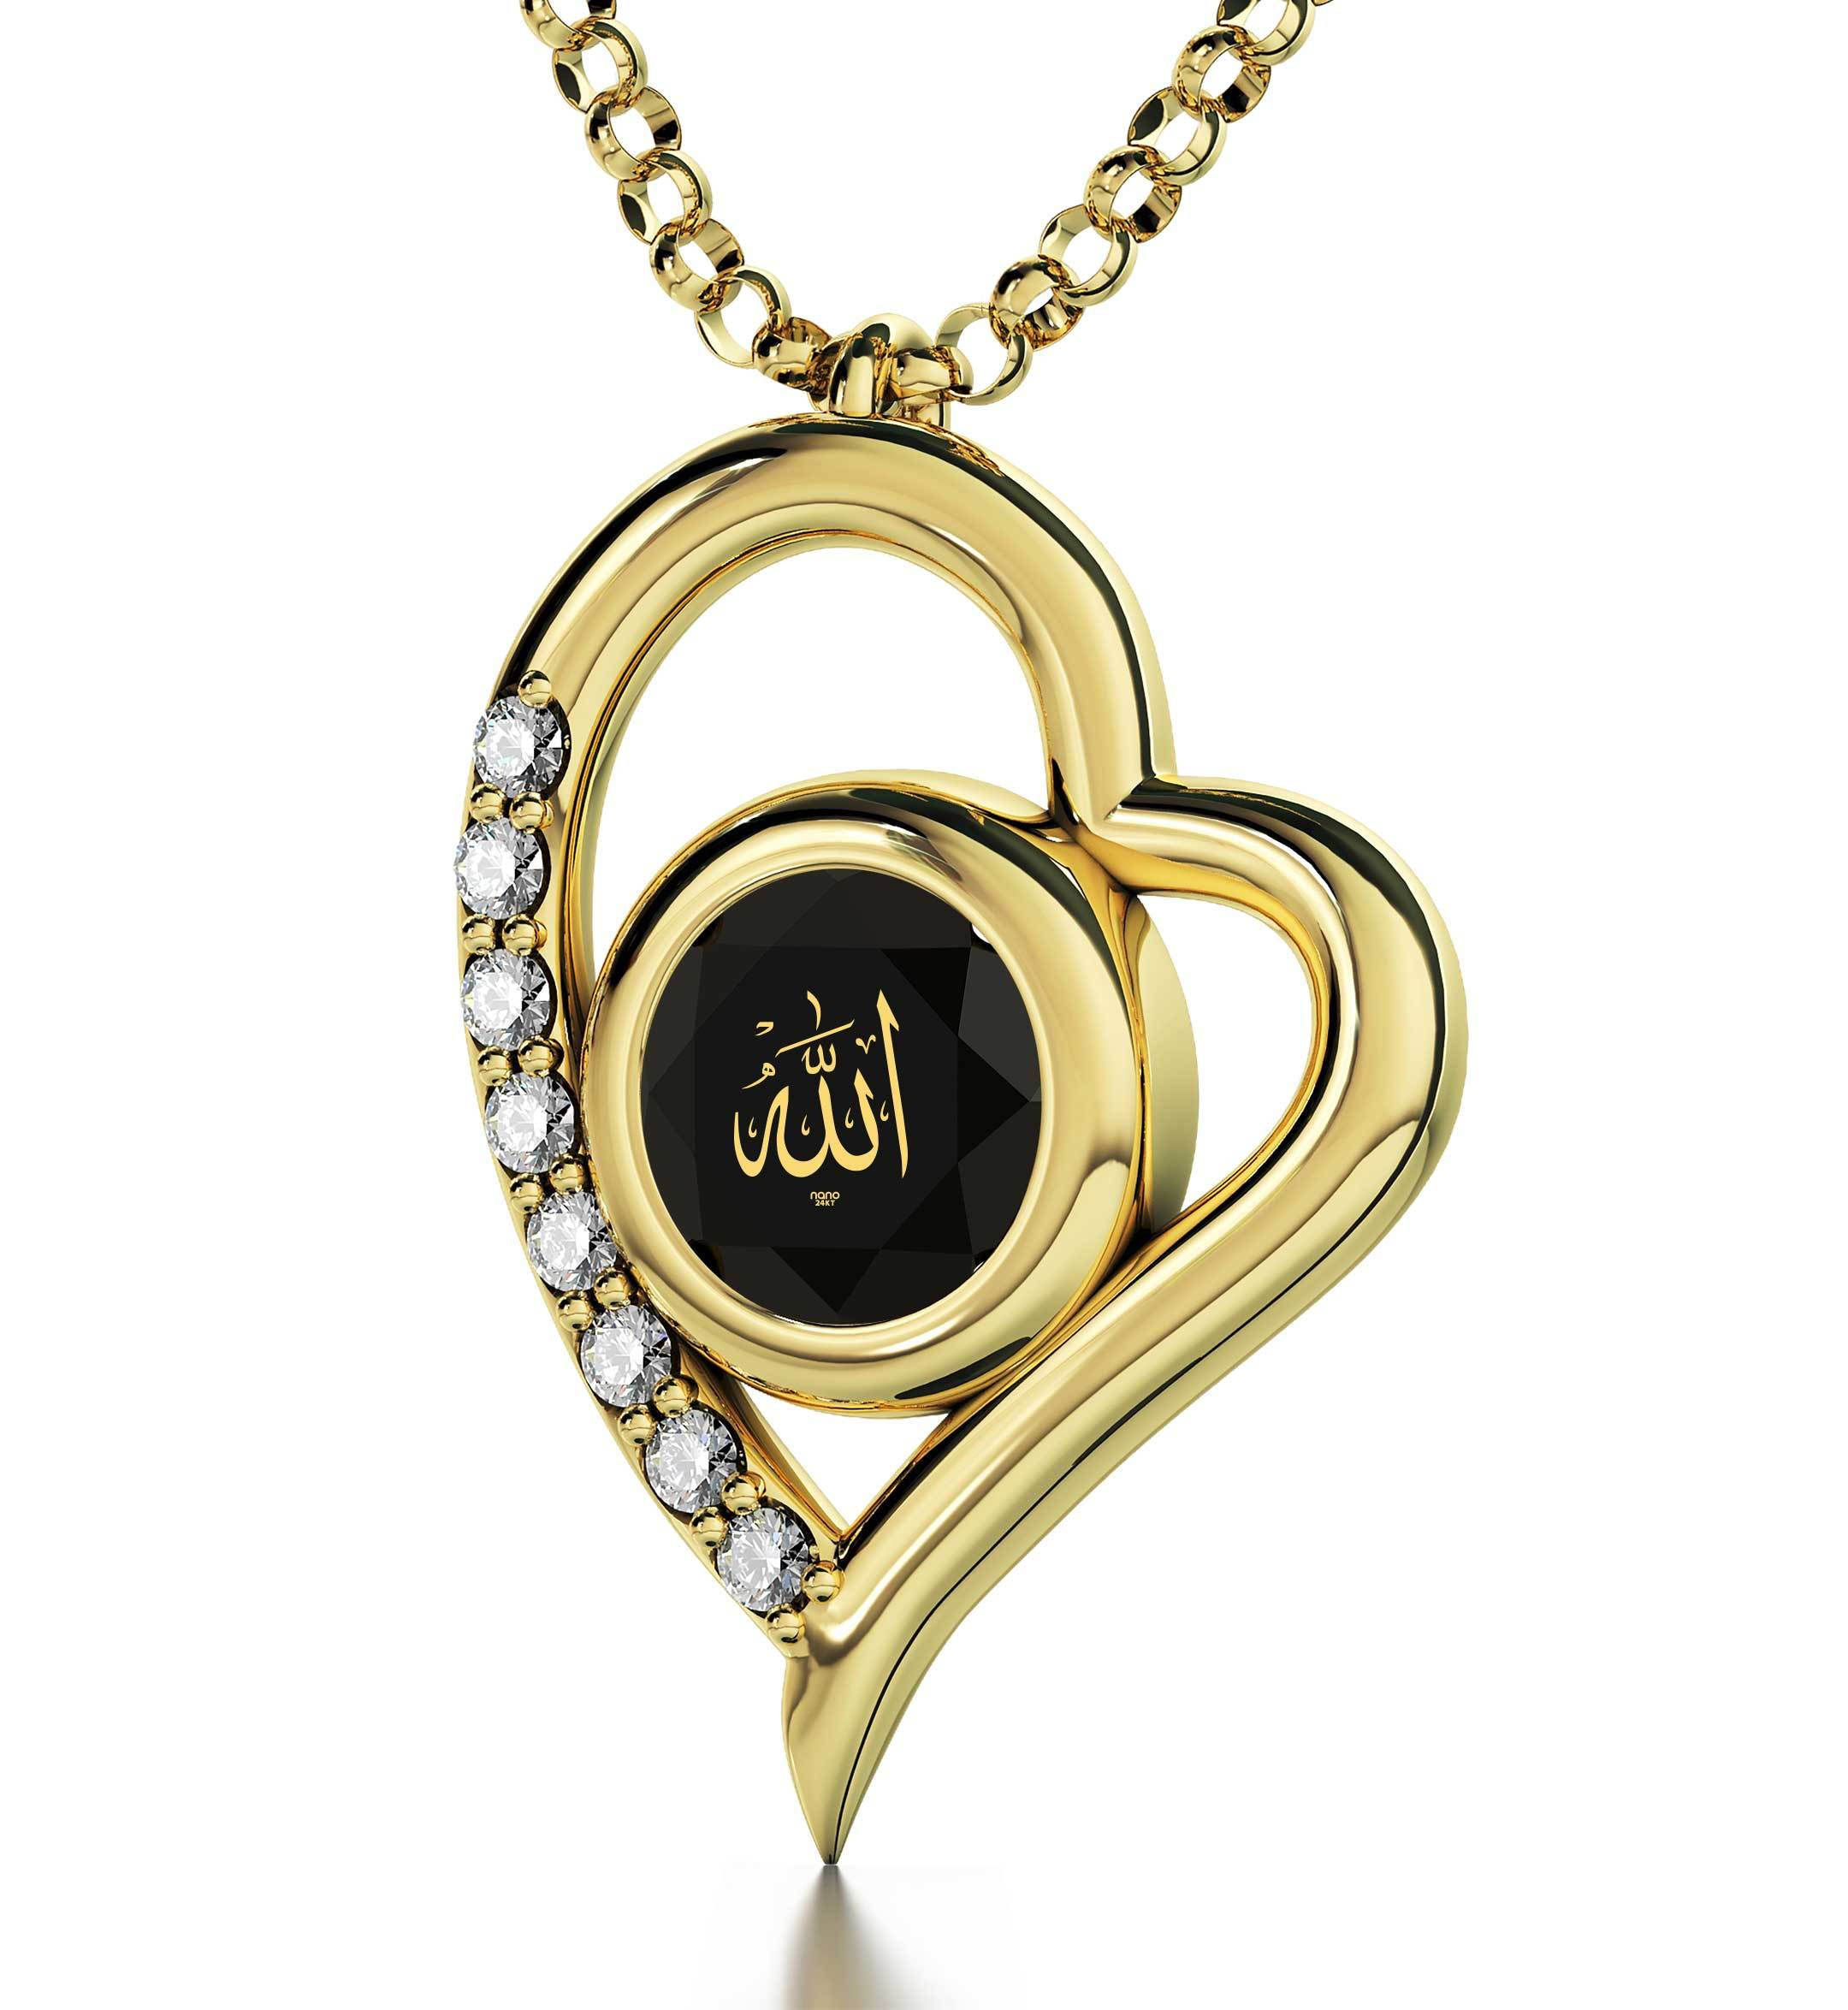 """Allah"" in Arabic Engraved in 24k Gold, Muslim Gifts for Women, Islamic Pendant, Black Stone Necklace"